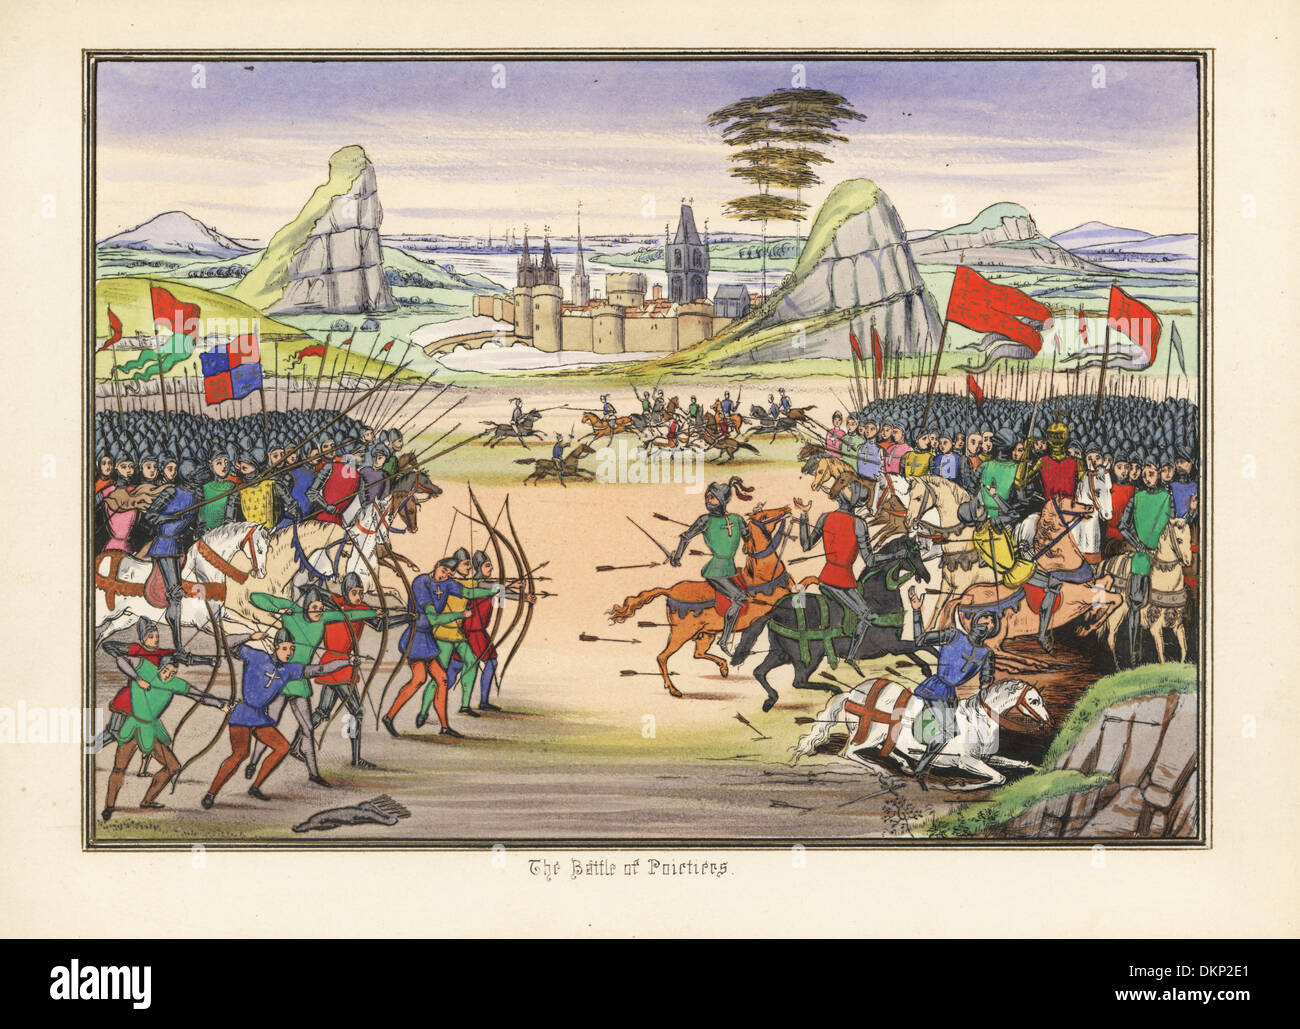 Battle of Poitiers, 1356, between the English and the French. - Stock Image